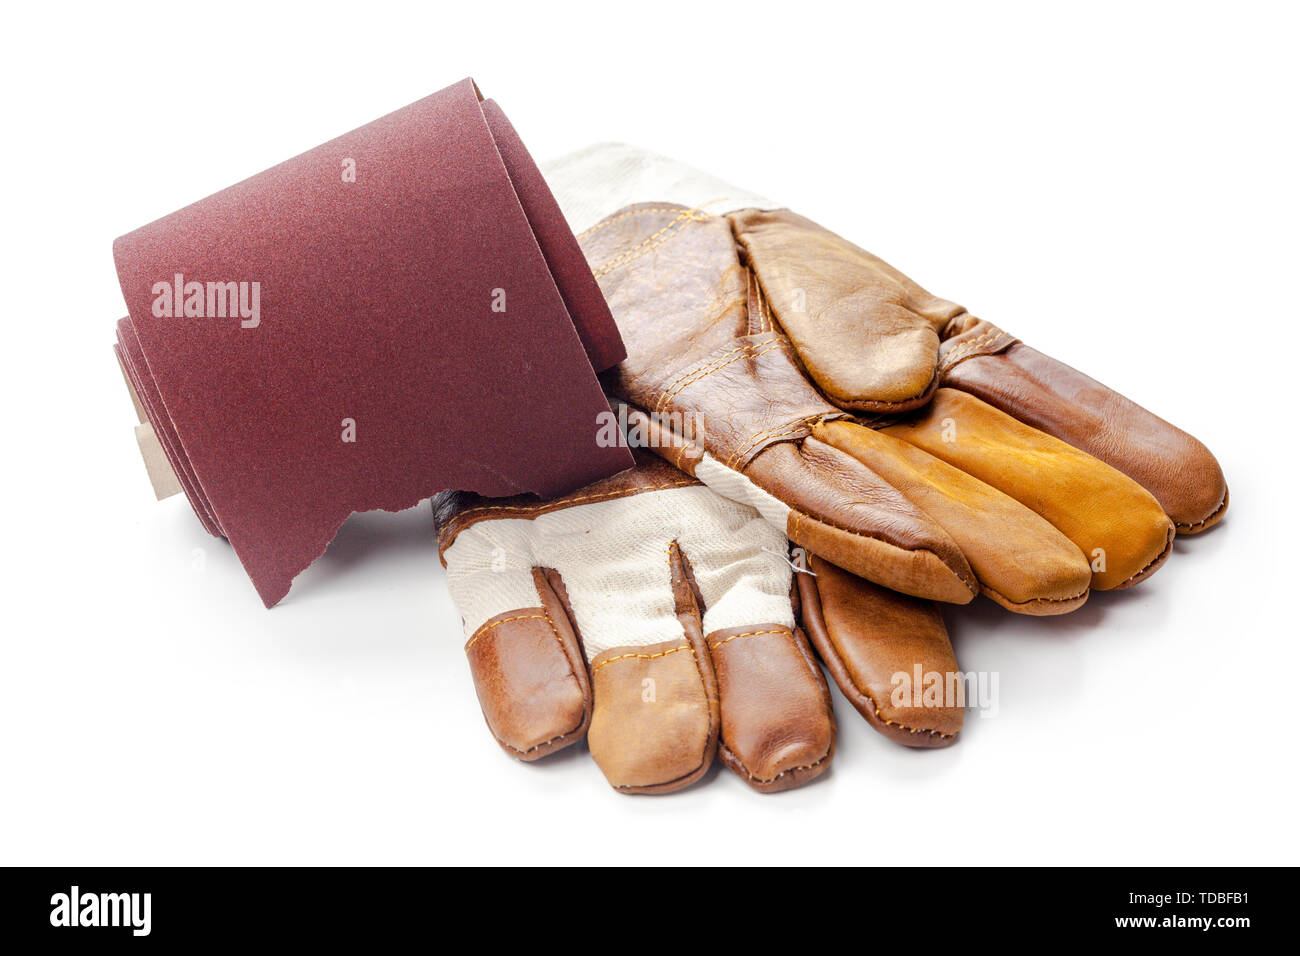 Emery paper - sandpaper - Stock Image